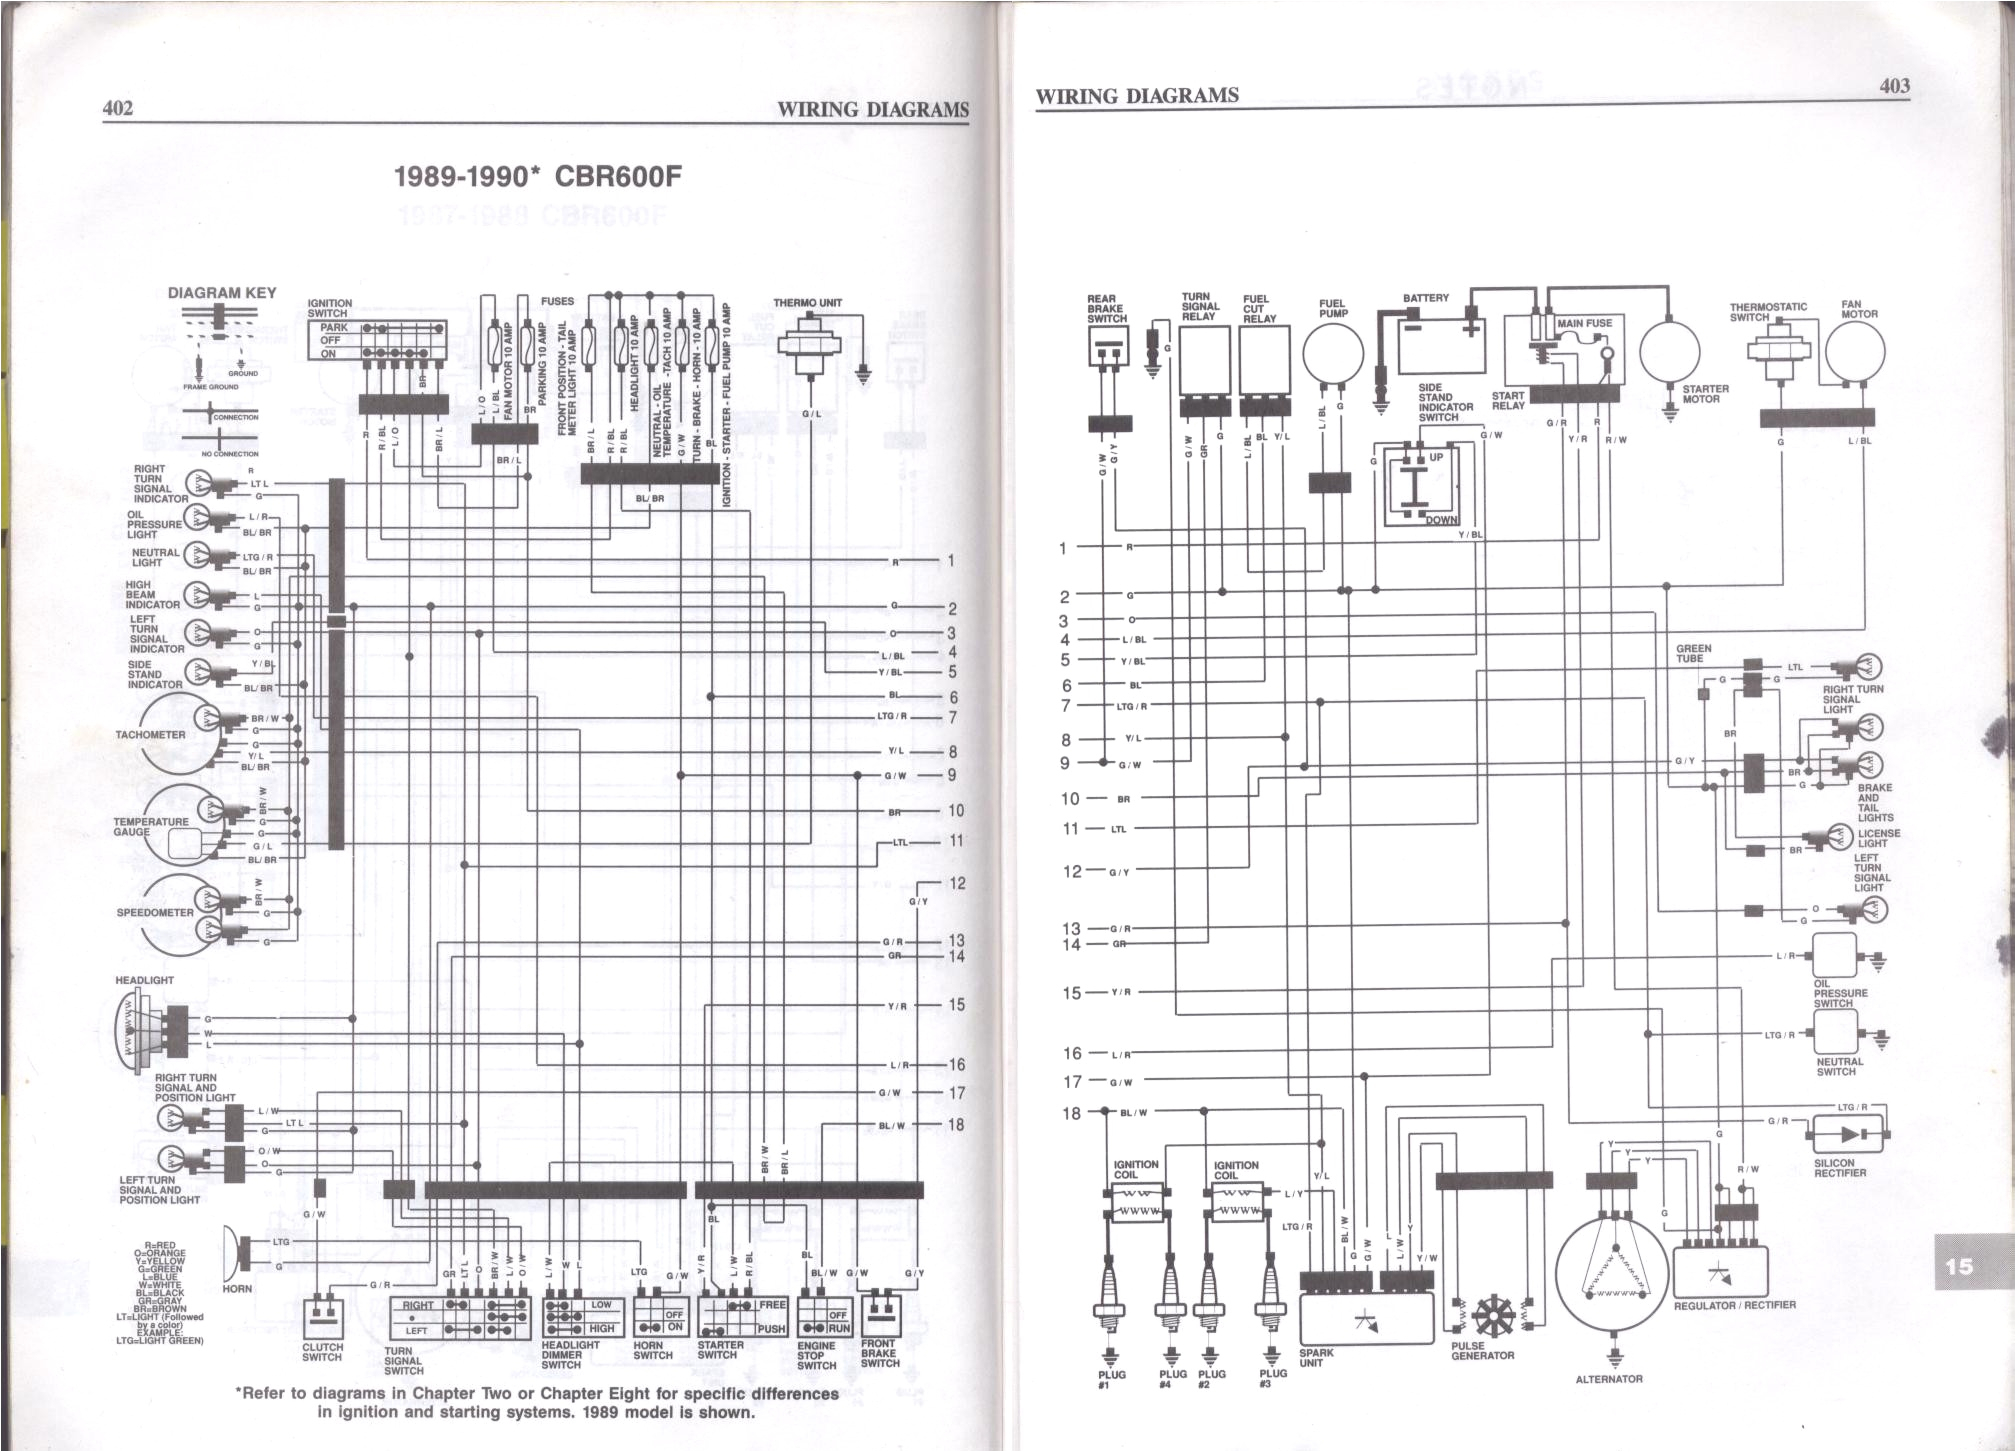 wiring diagram program wiring diagram software new wiring diagram honda c70 inspirationa index 0 0d 9g jpg